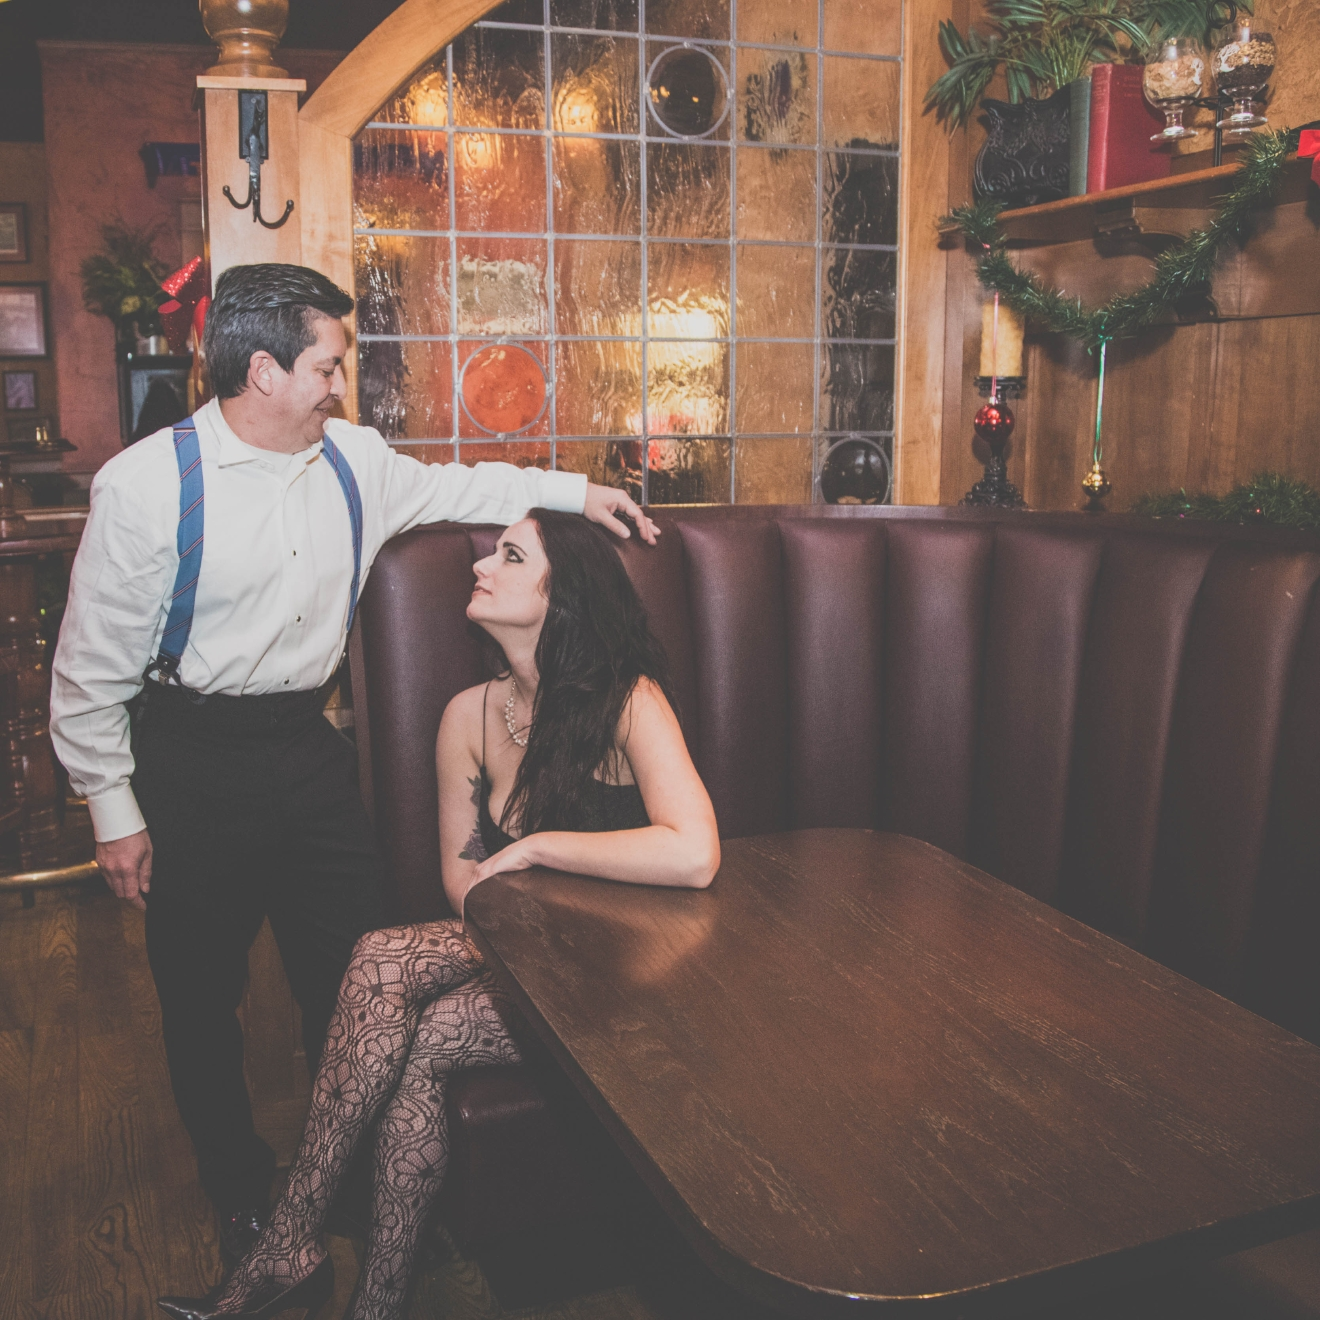 Bobby Romell in an Oscar de la Renta tuxedo, and Katelyn Bostick in a dress by Paper Crane with accessories from White House Black Market at The Pub in Rookwood. / Image: Catherine Viox // Published: 12.23.16